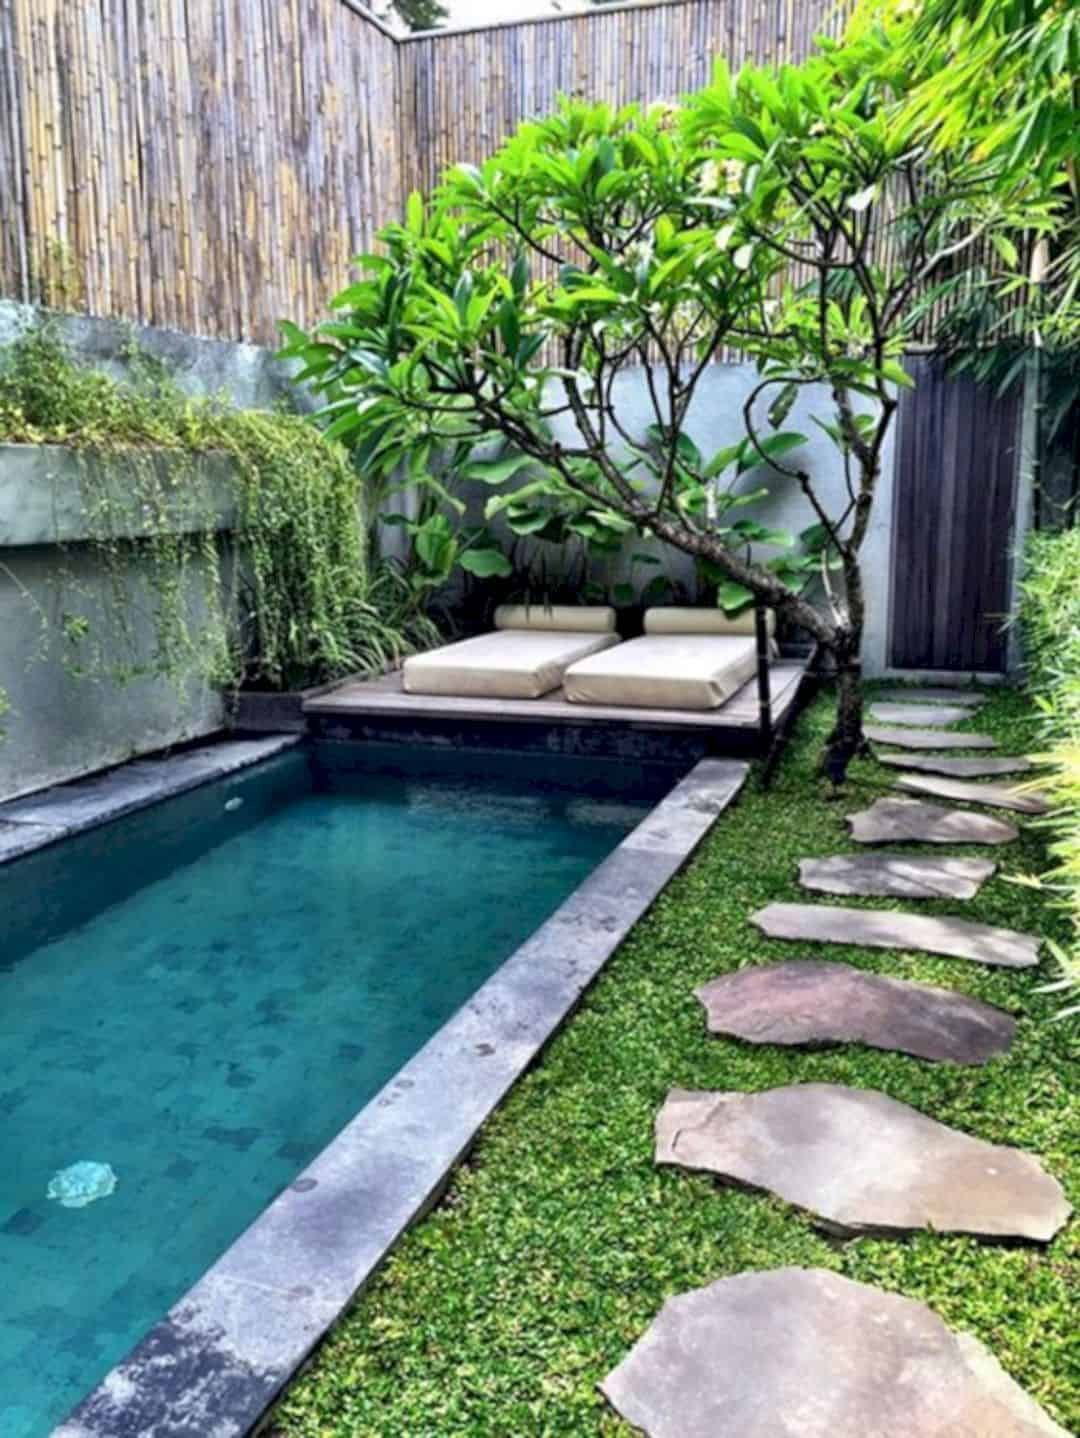 Coolest Small Pool Ideas With 9 Basic Preparation Tips Futurist Architecture Patio Garden Design Small Patio Garden Small Backyard Gardens